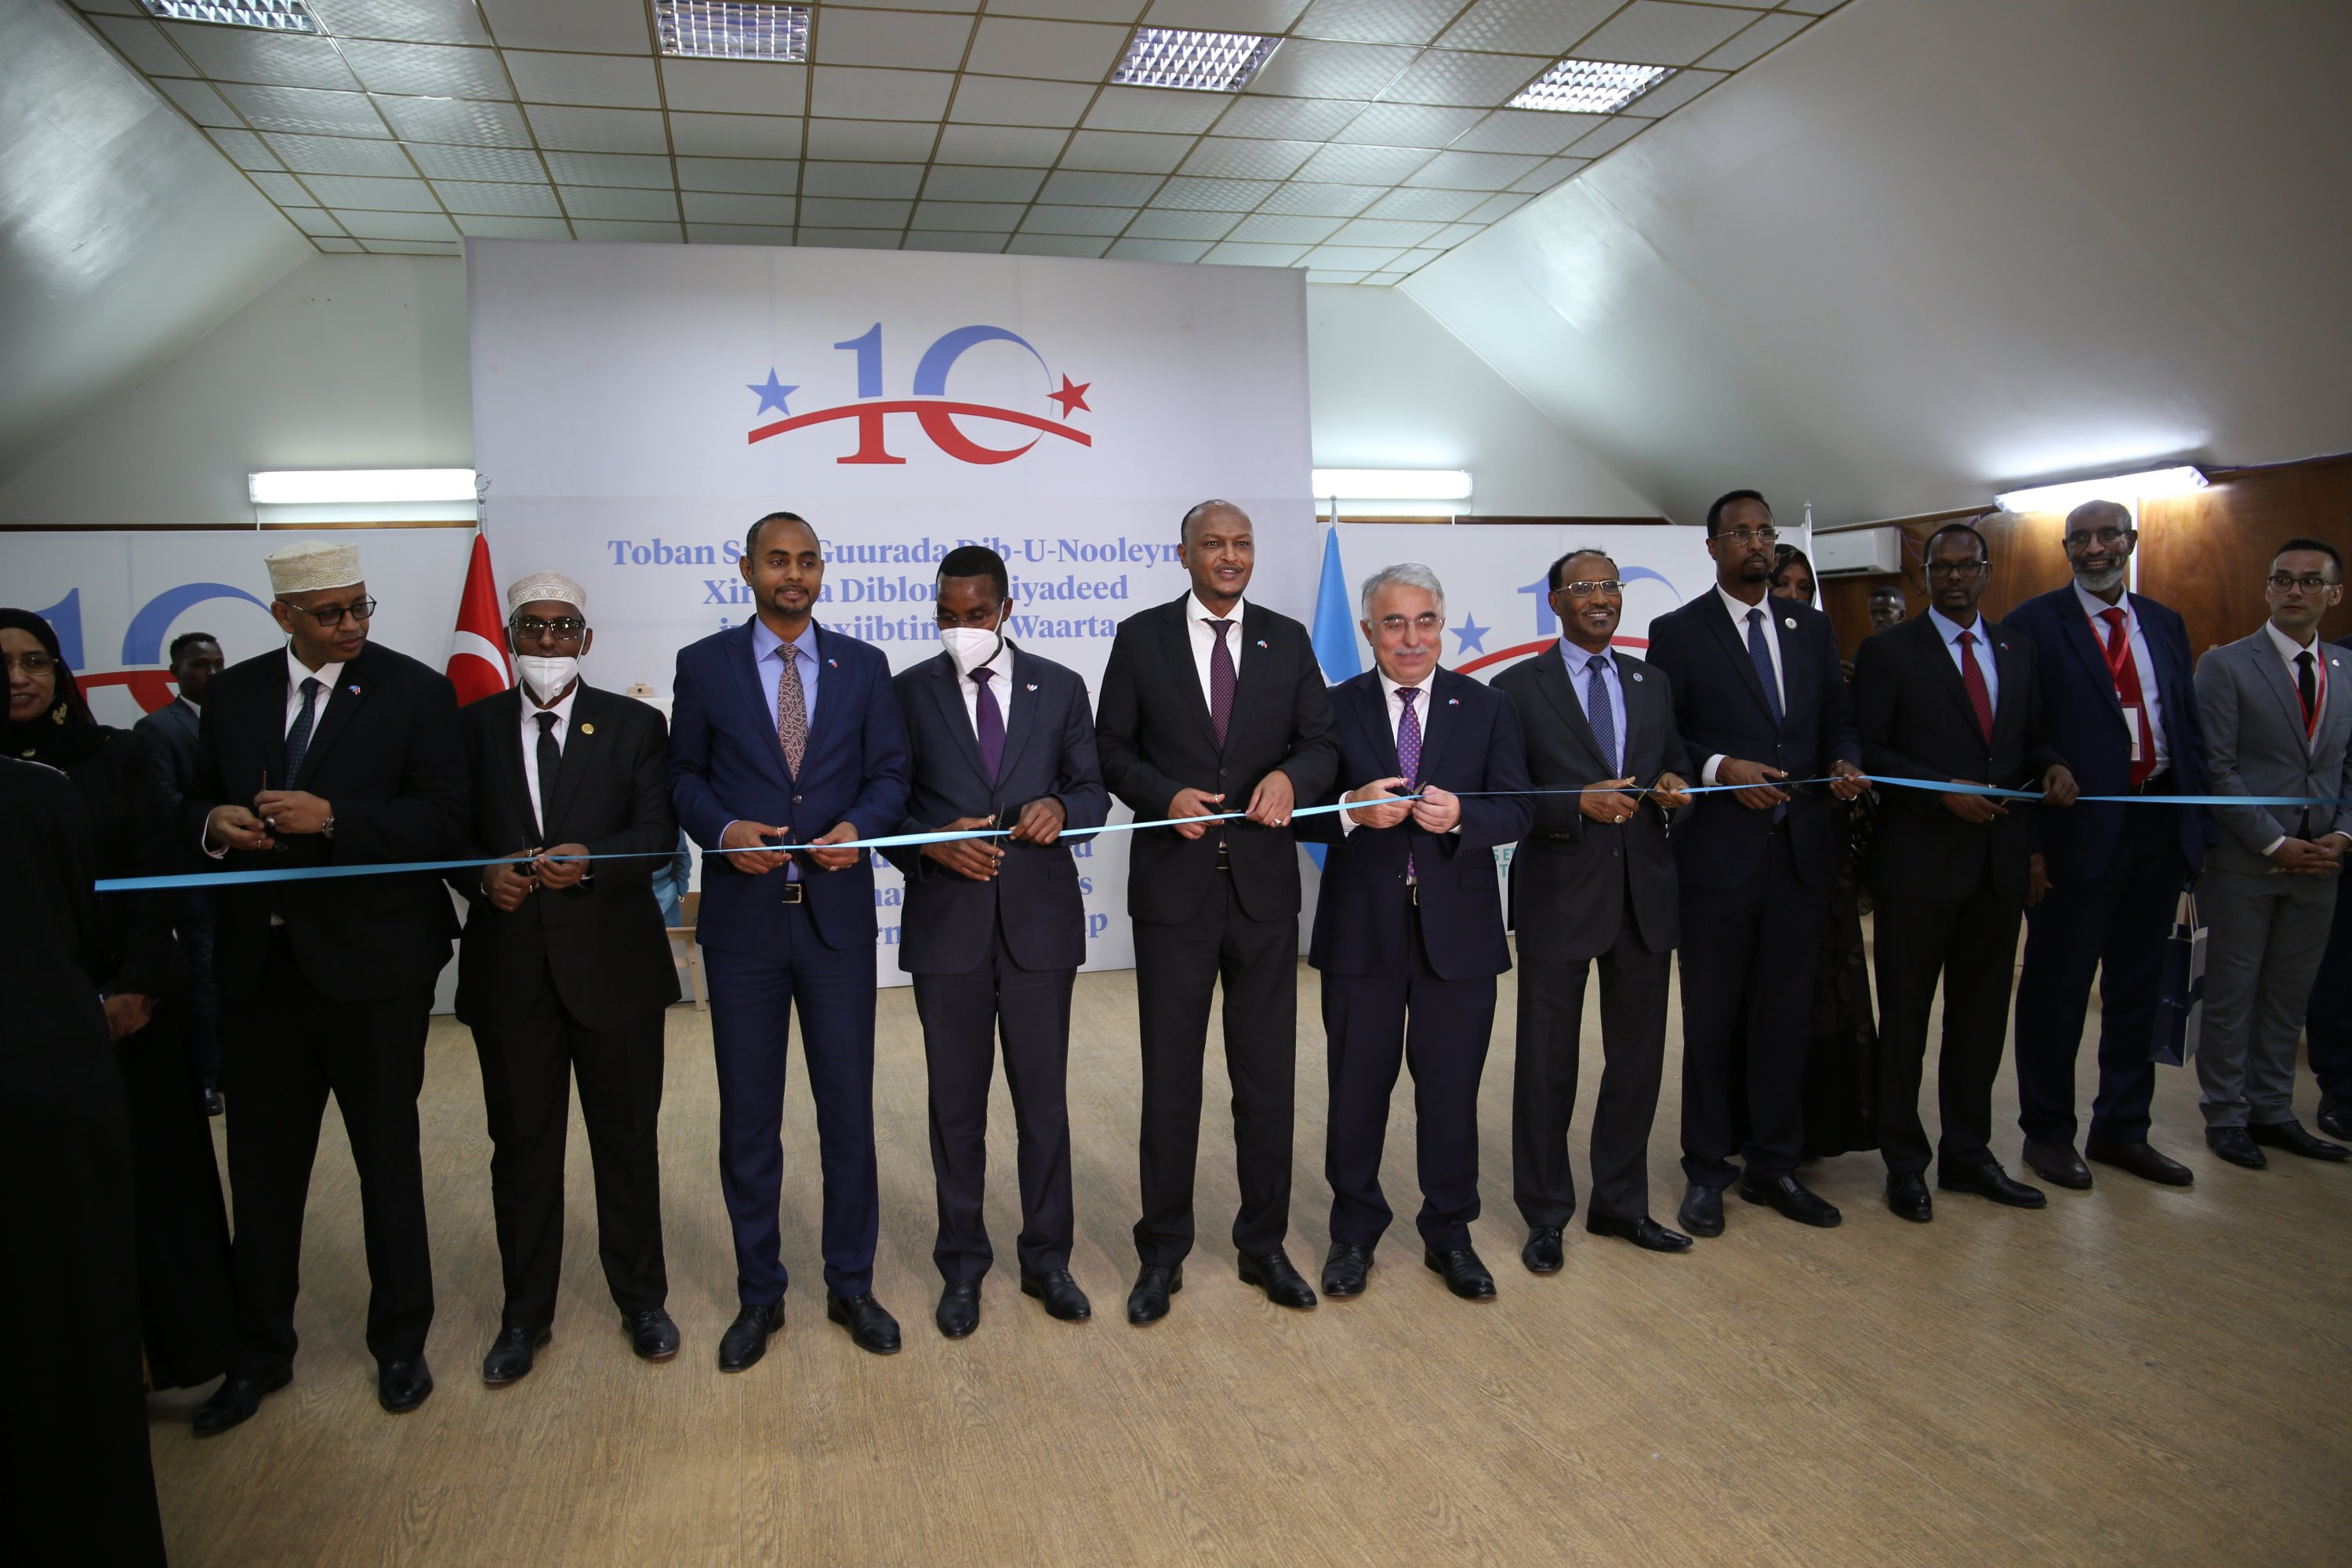 Officials cut a ribbon during a ceremony to mark 10 years of Turkish and Somali relations, in Mogadishu, Somalia, Aug. 19, 2021. (AA Photo)